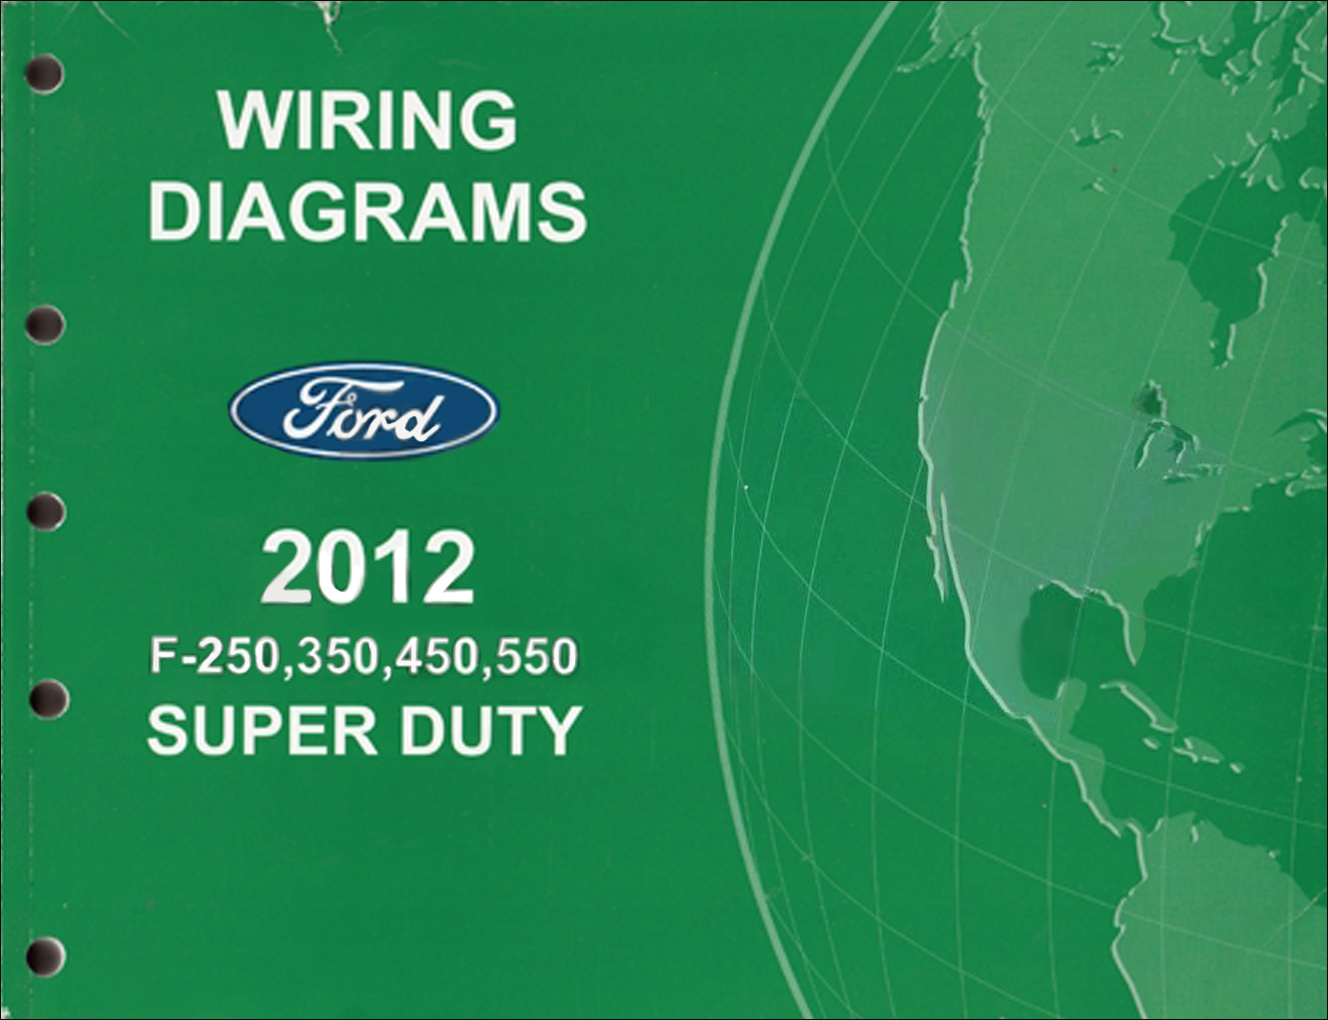 2012 Ford F-250 thru 550 Super Duty Wiring Diagram Manual Original